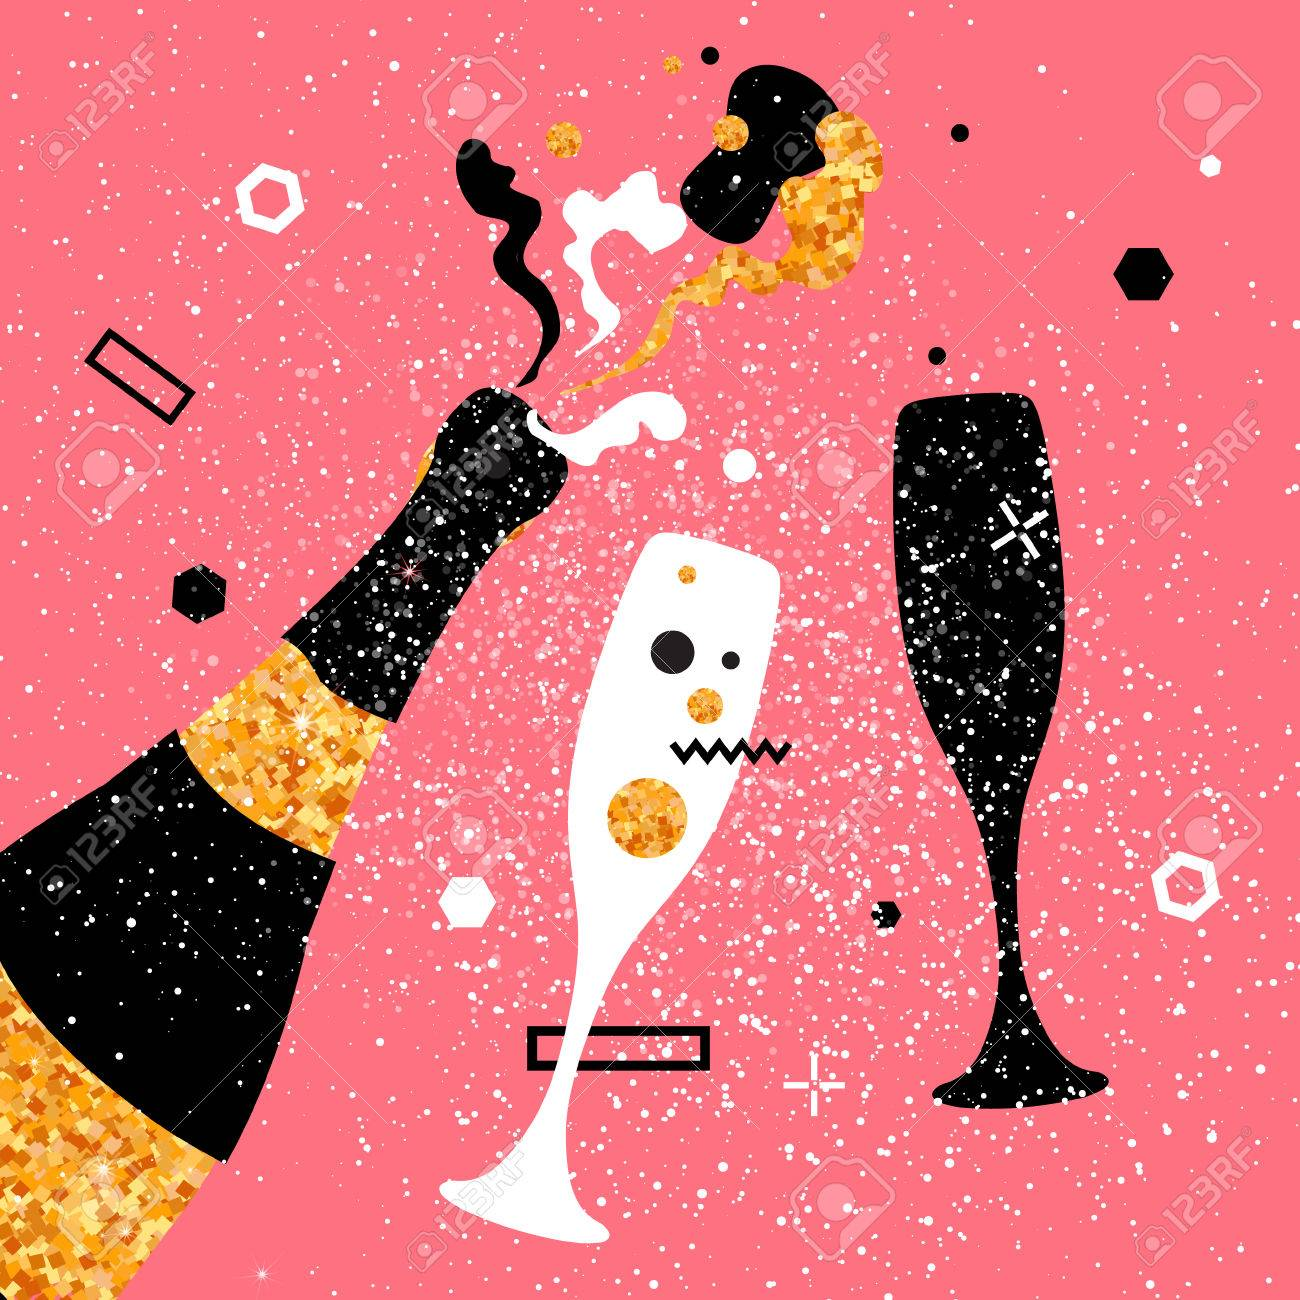 Champagne flutes and bottle with golden glitter elements on pink background. Cheers - Clinking glass silhouette. Cheerful holiday. Alcoholic beverages. Concept party celebration. Vector Illustration. - 68404222